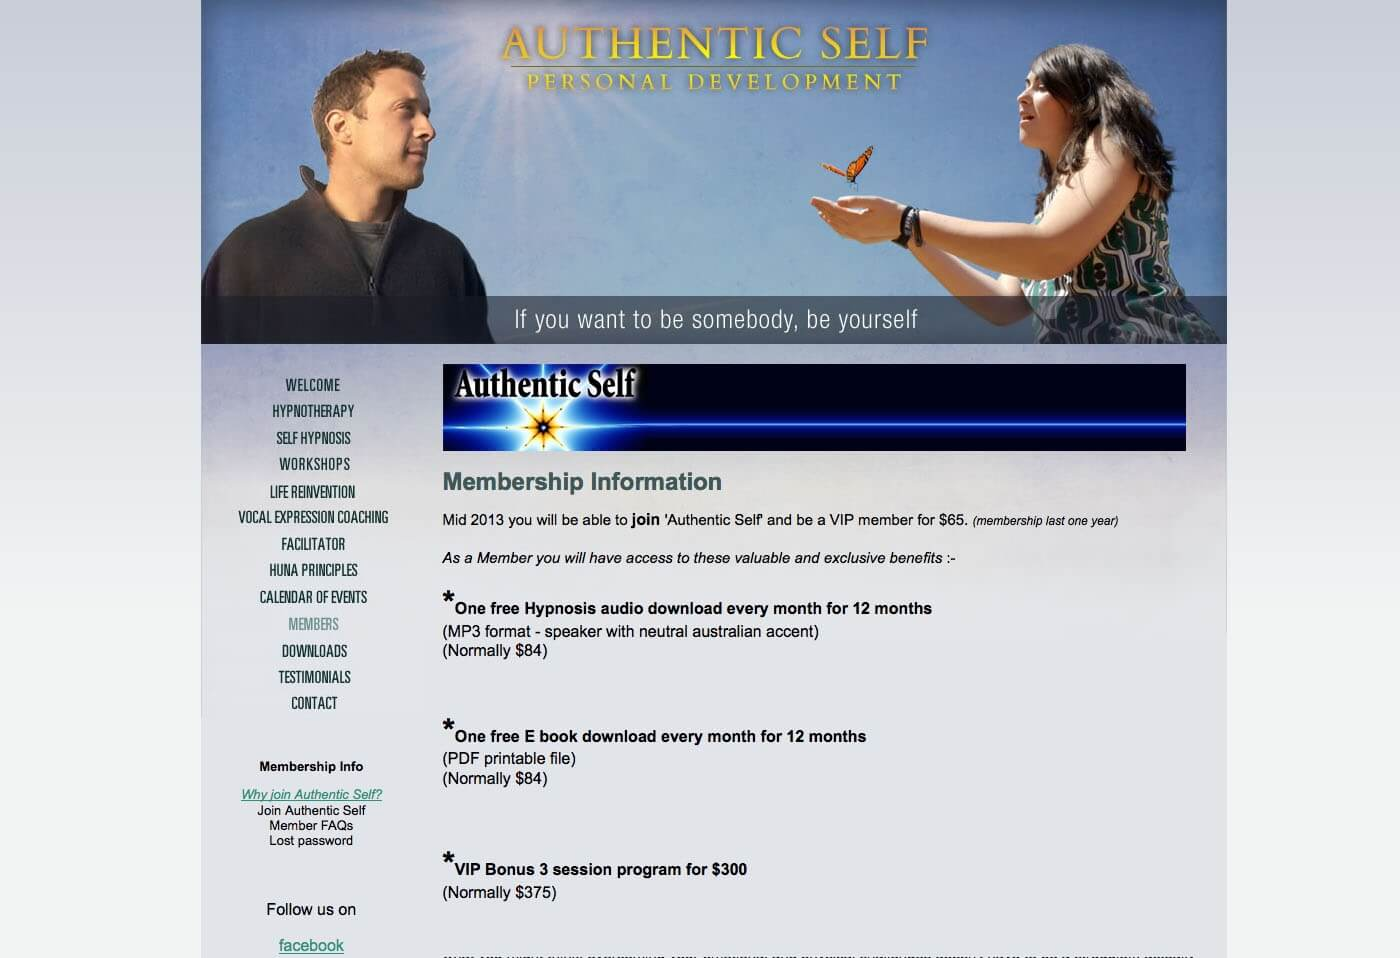 Able Video Authentic Self Personal Development Website